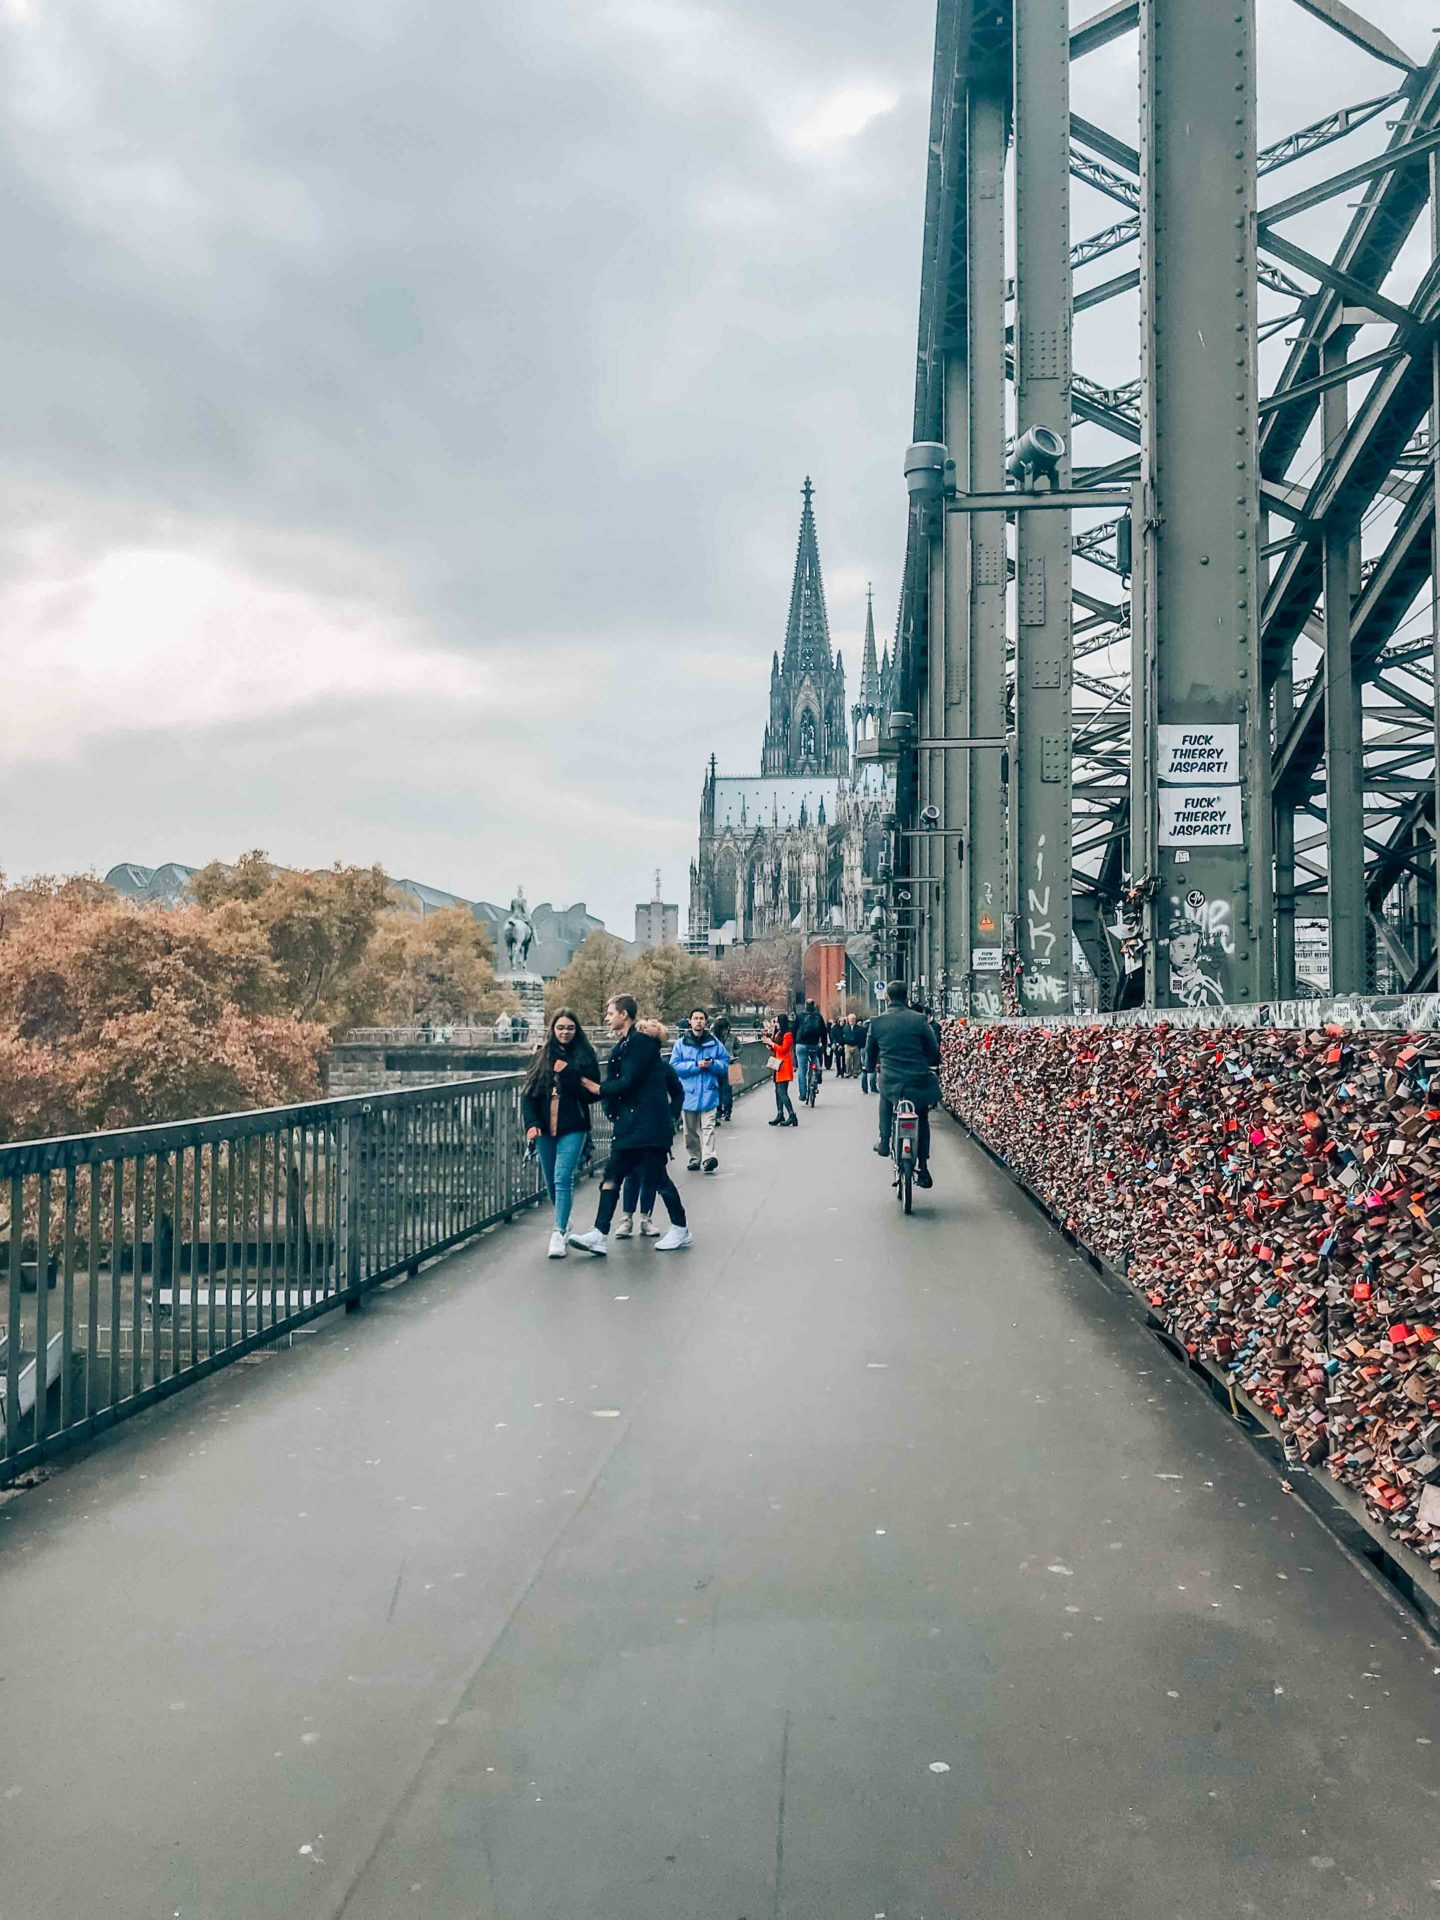 On the Hohenzollernbrucke in Cologne